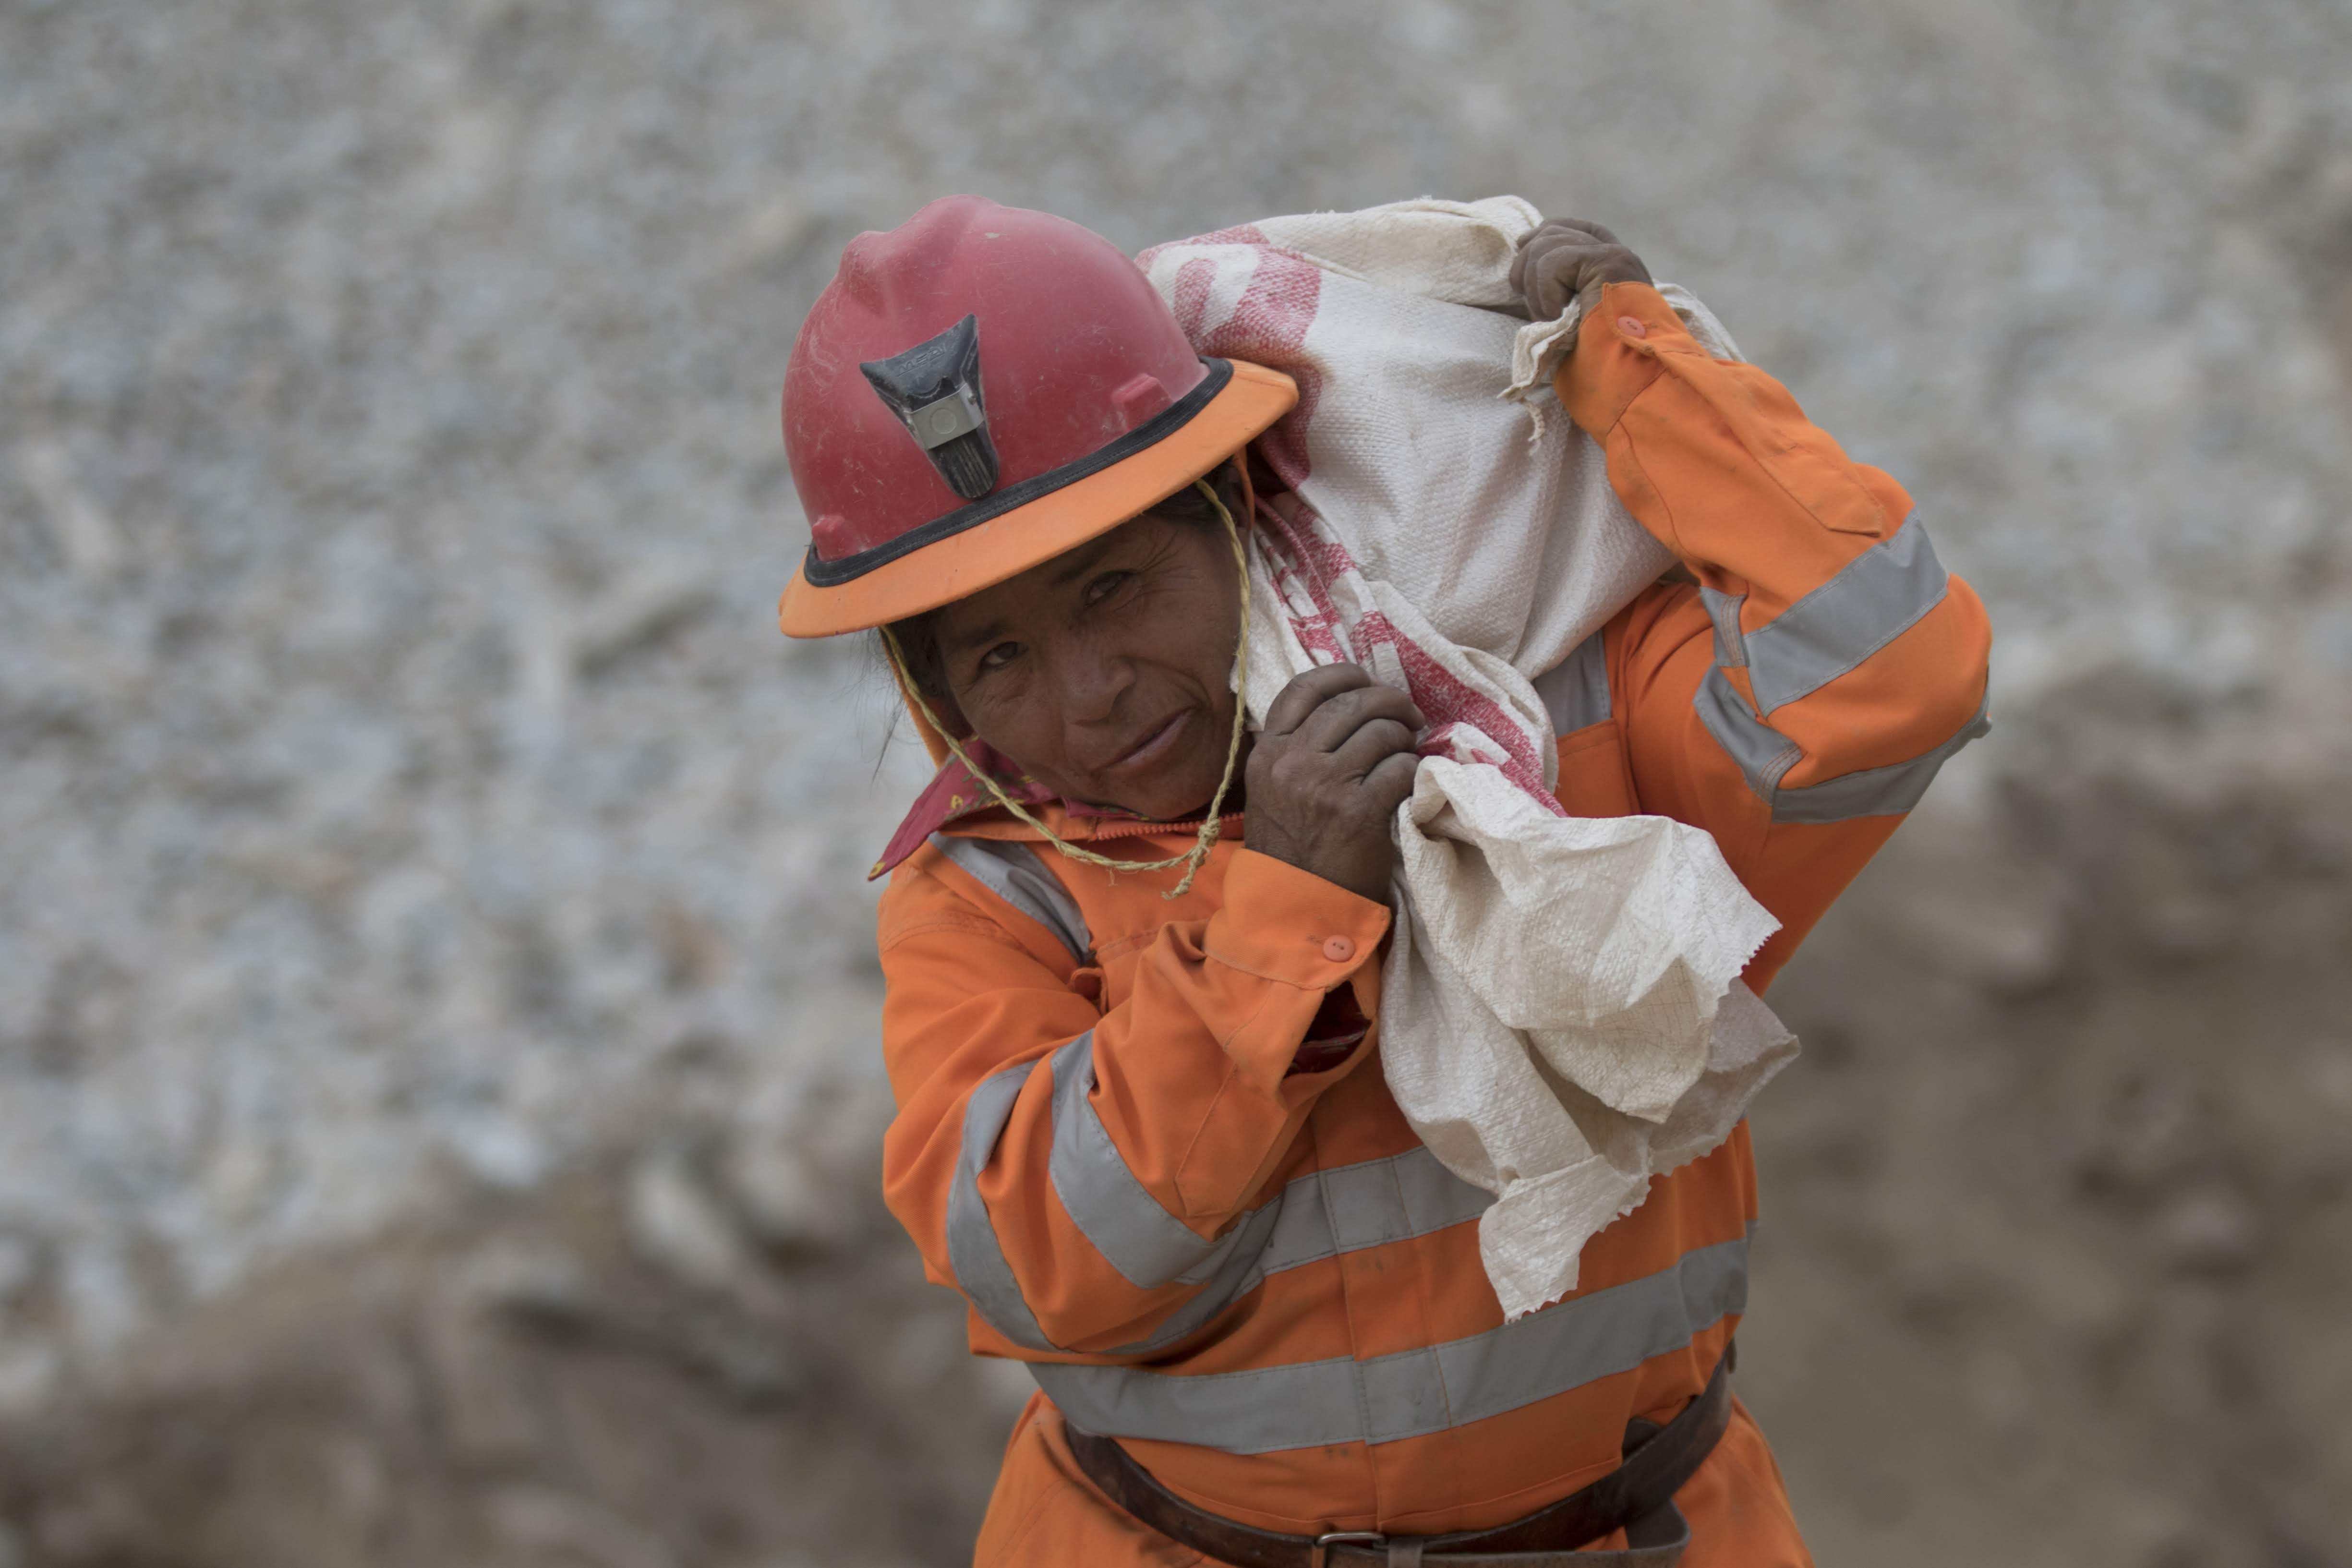 PERU | #GoldenWomen: Advances and challenges for women in small-scale mining